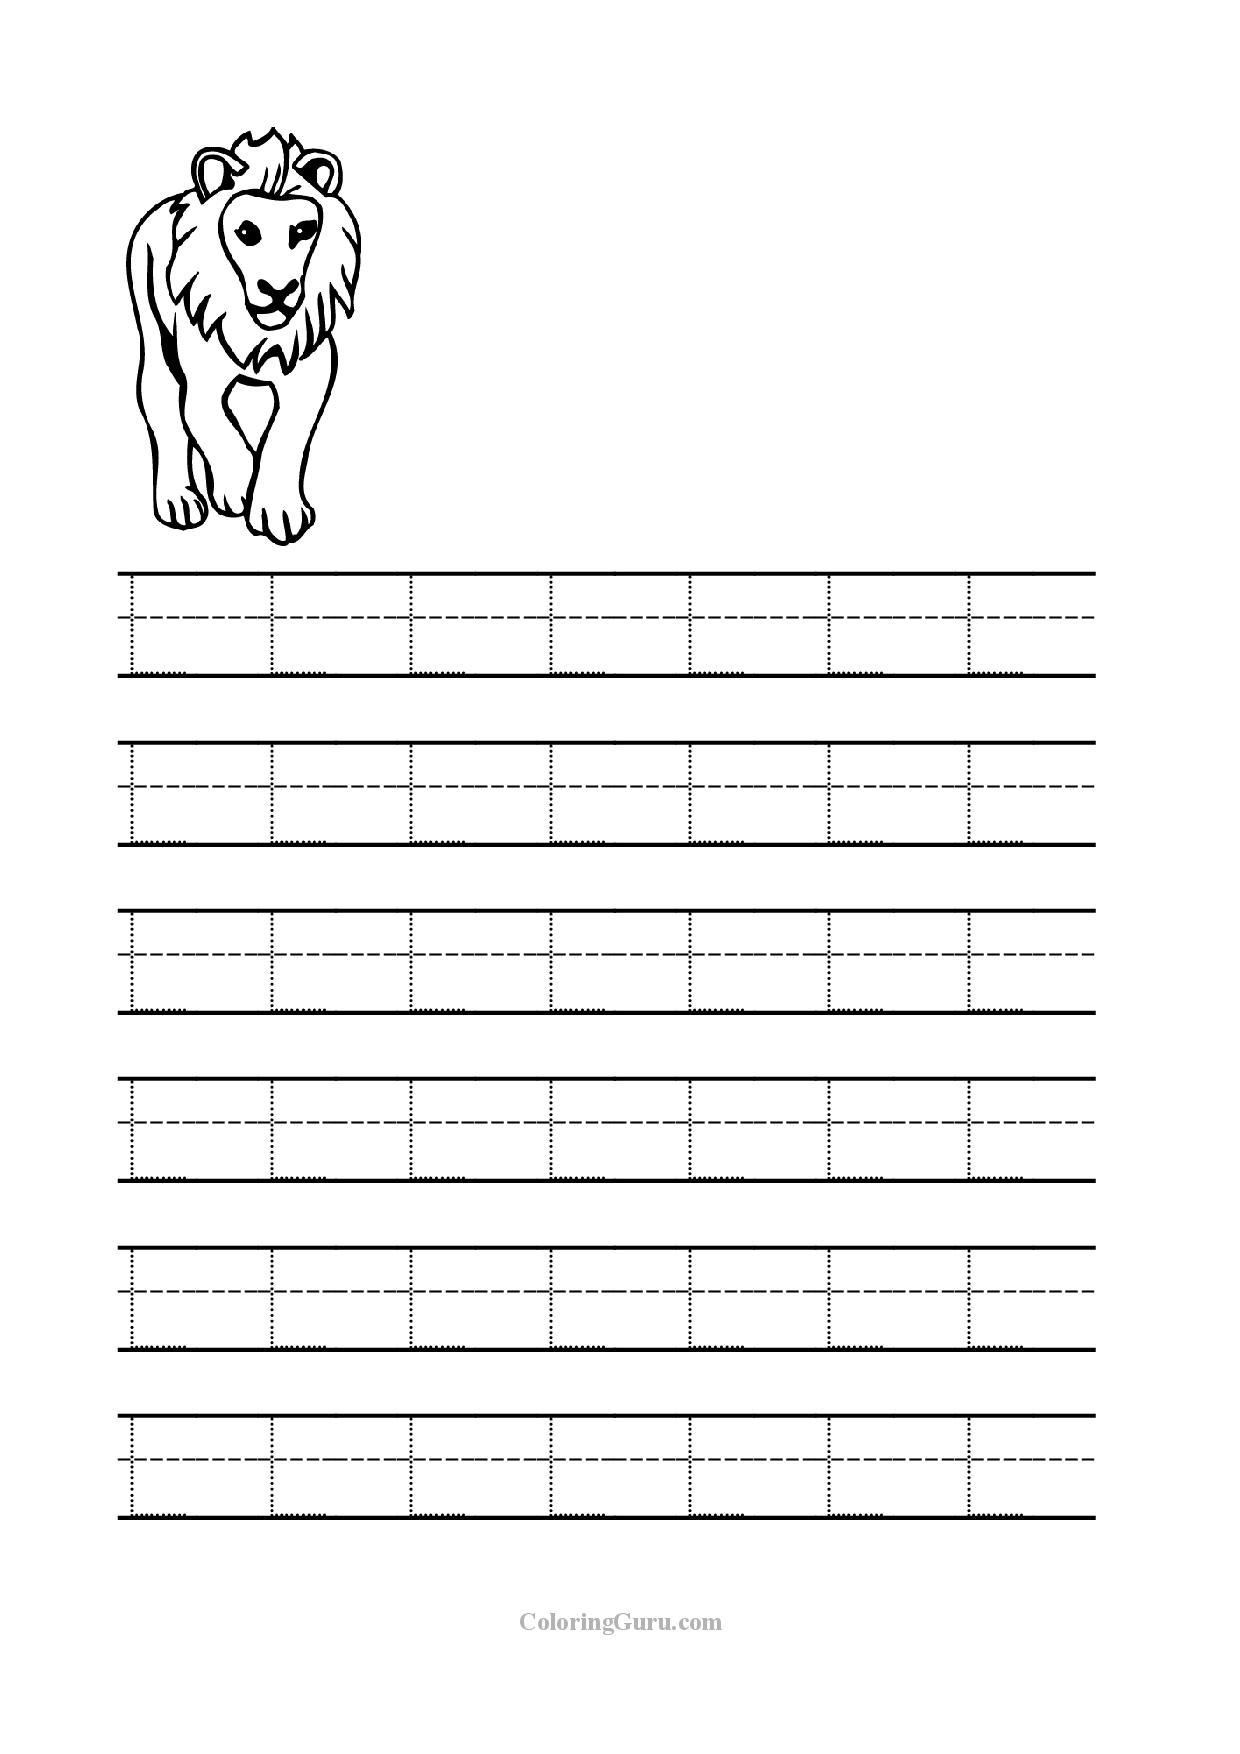 3 Worksheets Practicing Letters K And L In